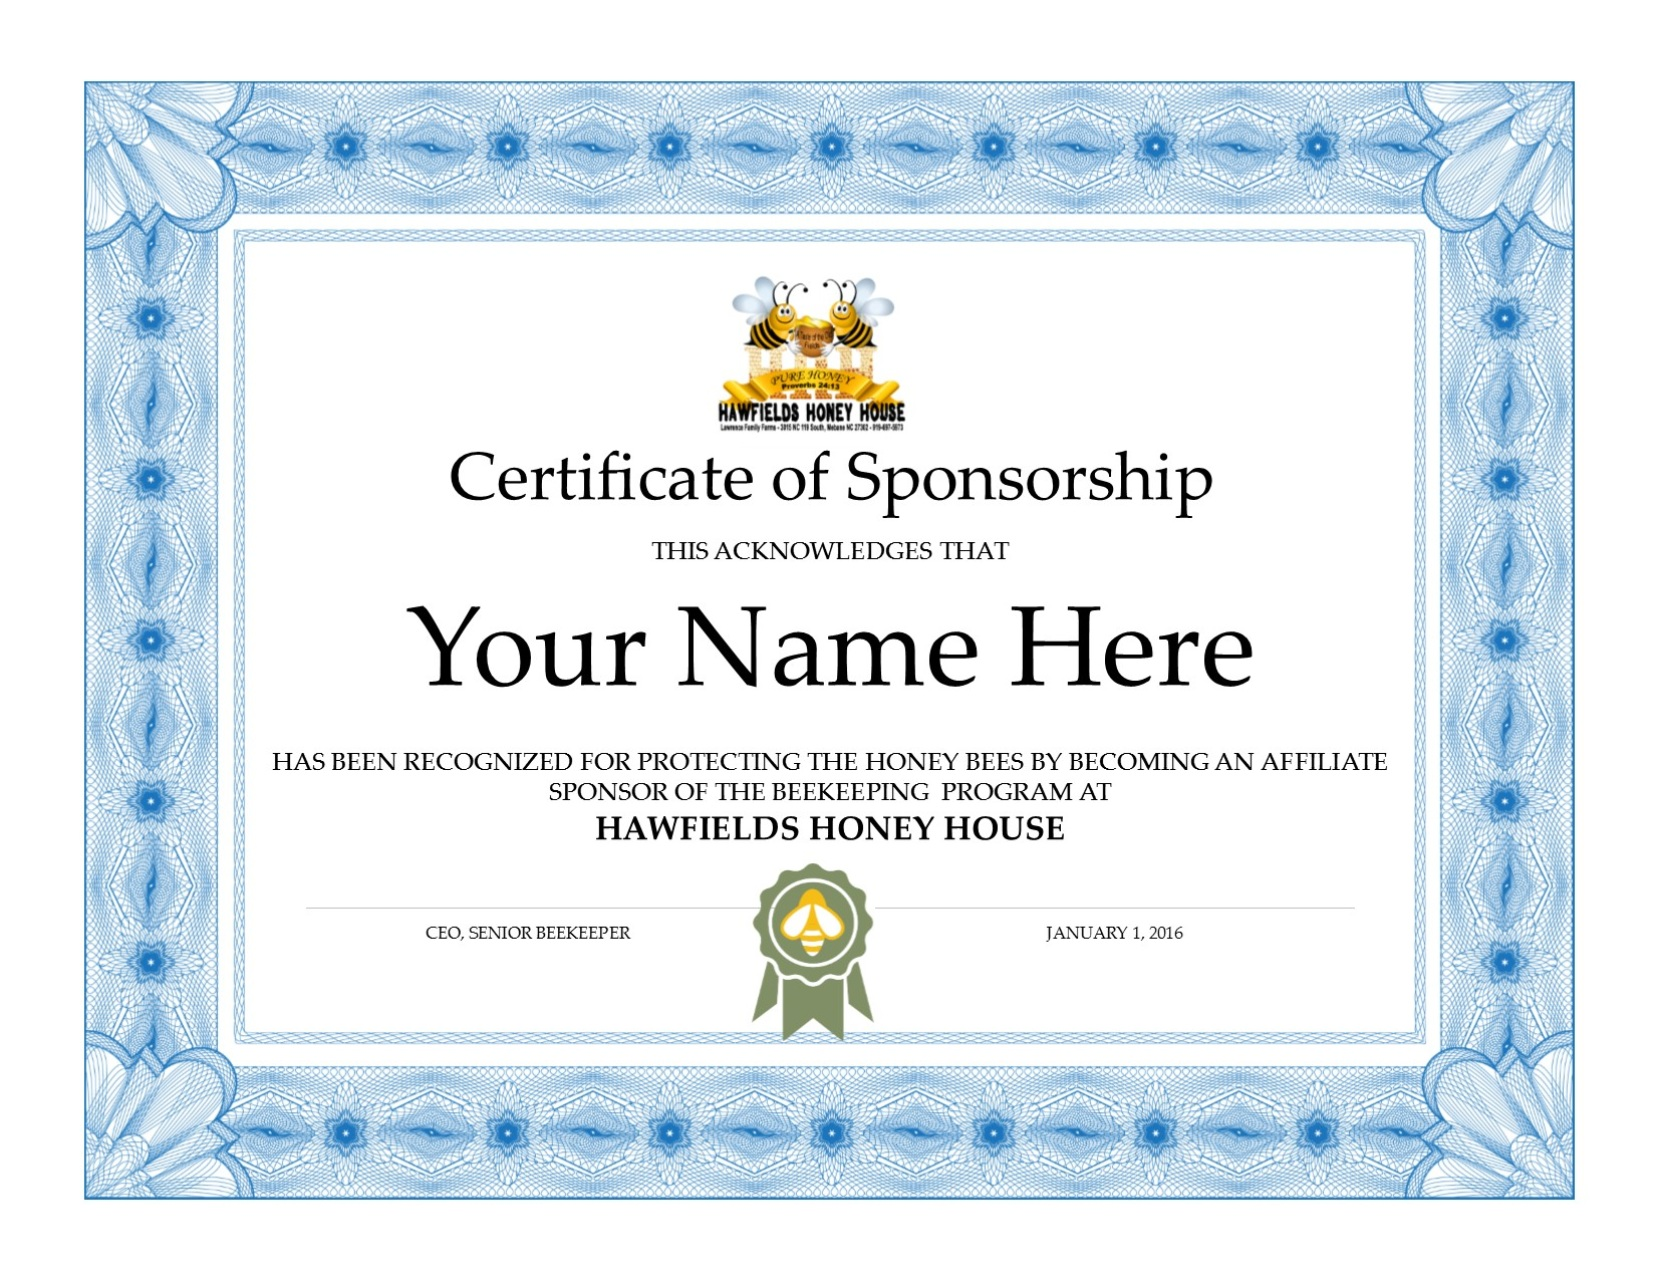 Restricted Certificate of Sponsorship